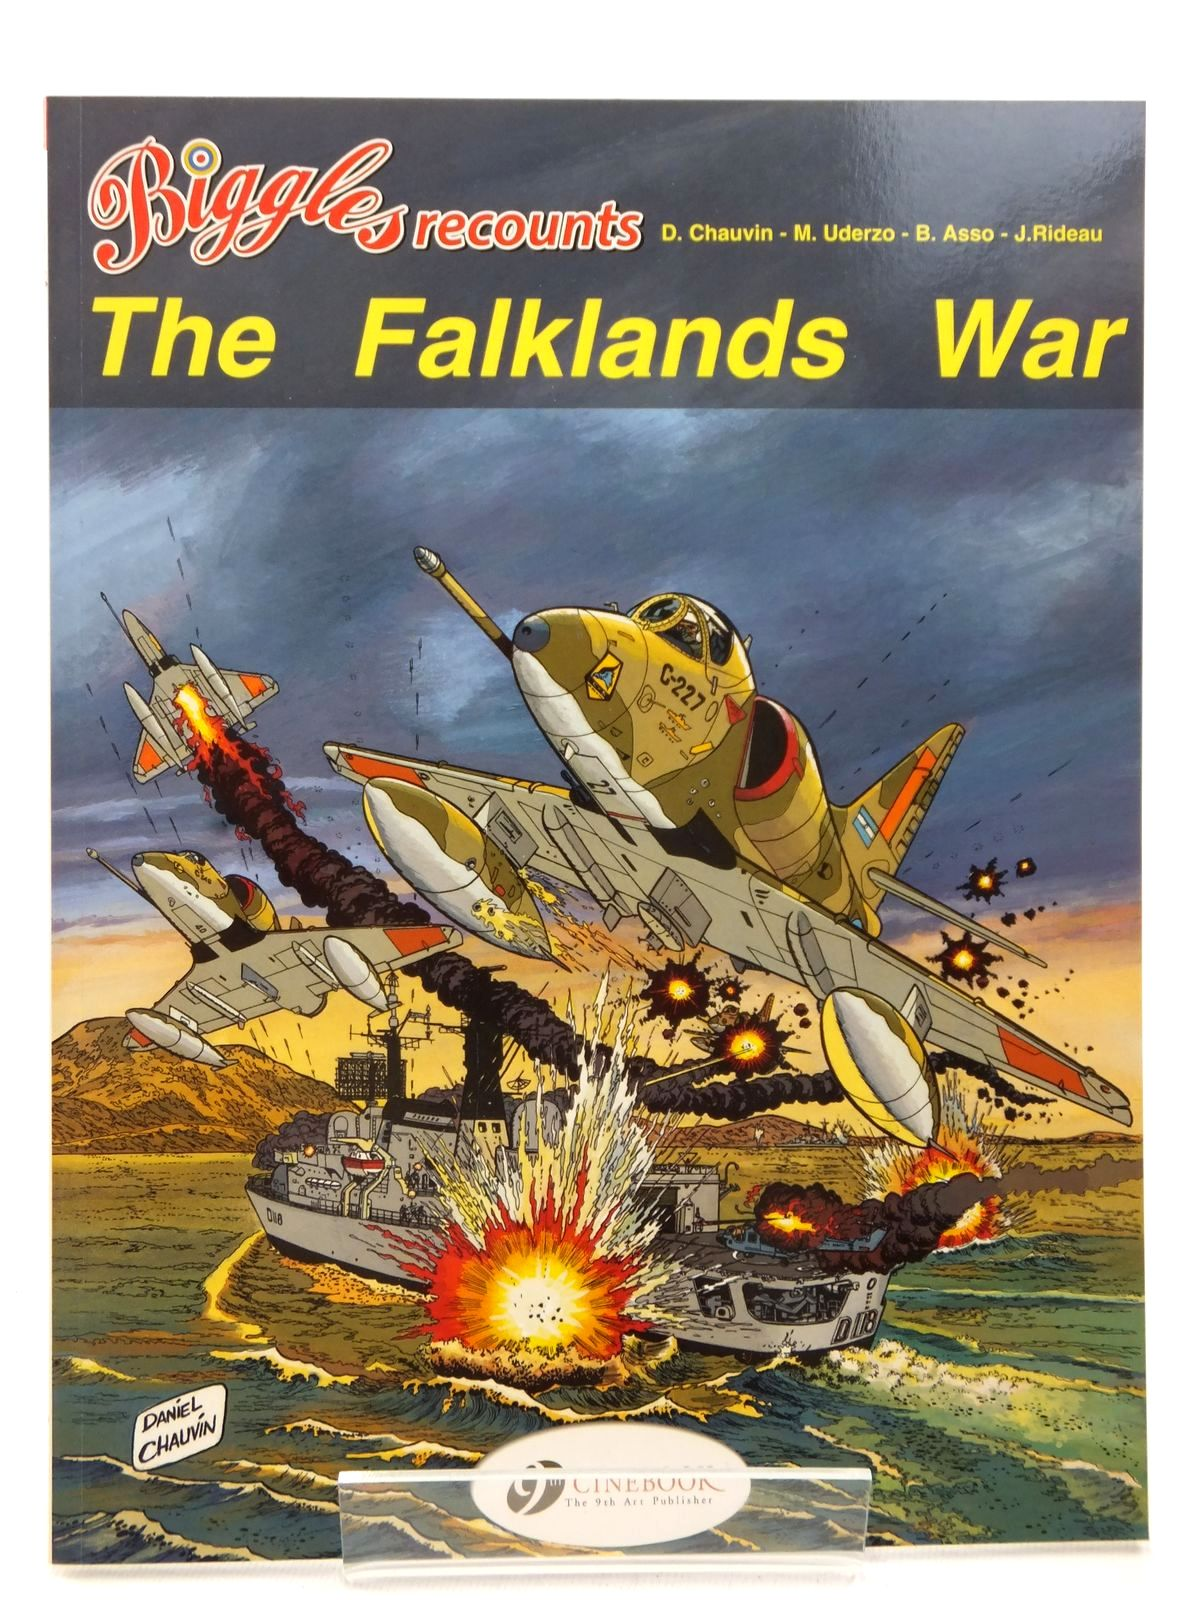 Photo of BIGGLES RECOUNTS THE FALKLANDS WAR written by Asso, Bernard Rideau, Joel illustrated by Chauvin, Daniel Uderzo, Marcel published by Cinebook Ltd (STOCK CODE: 2123155)  for sale by Stella & Rose's Books